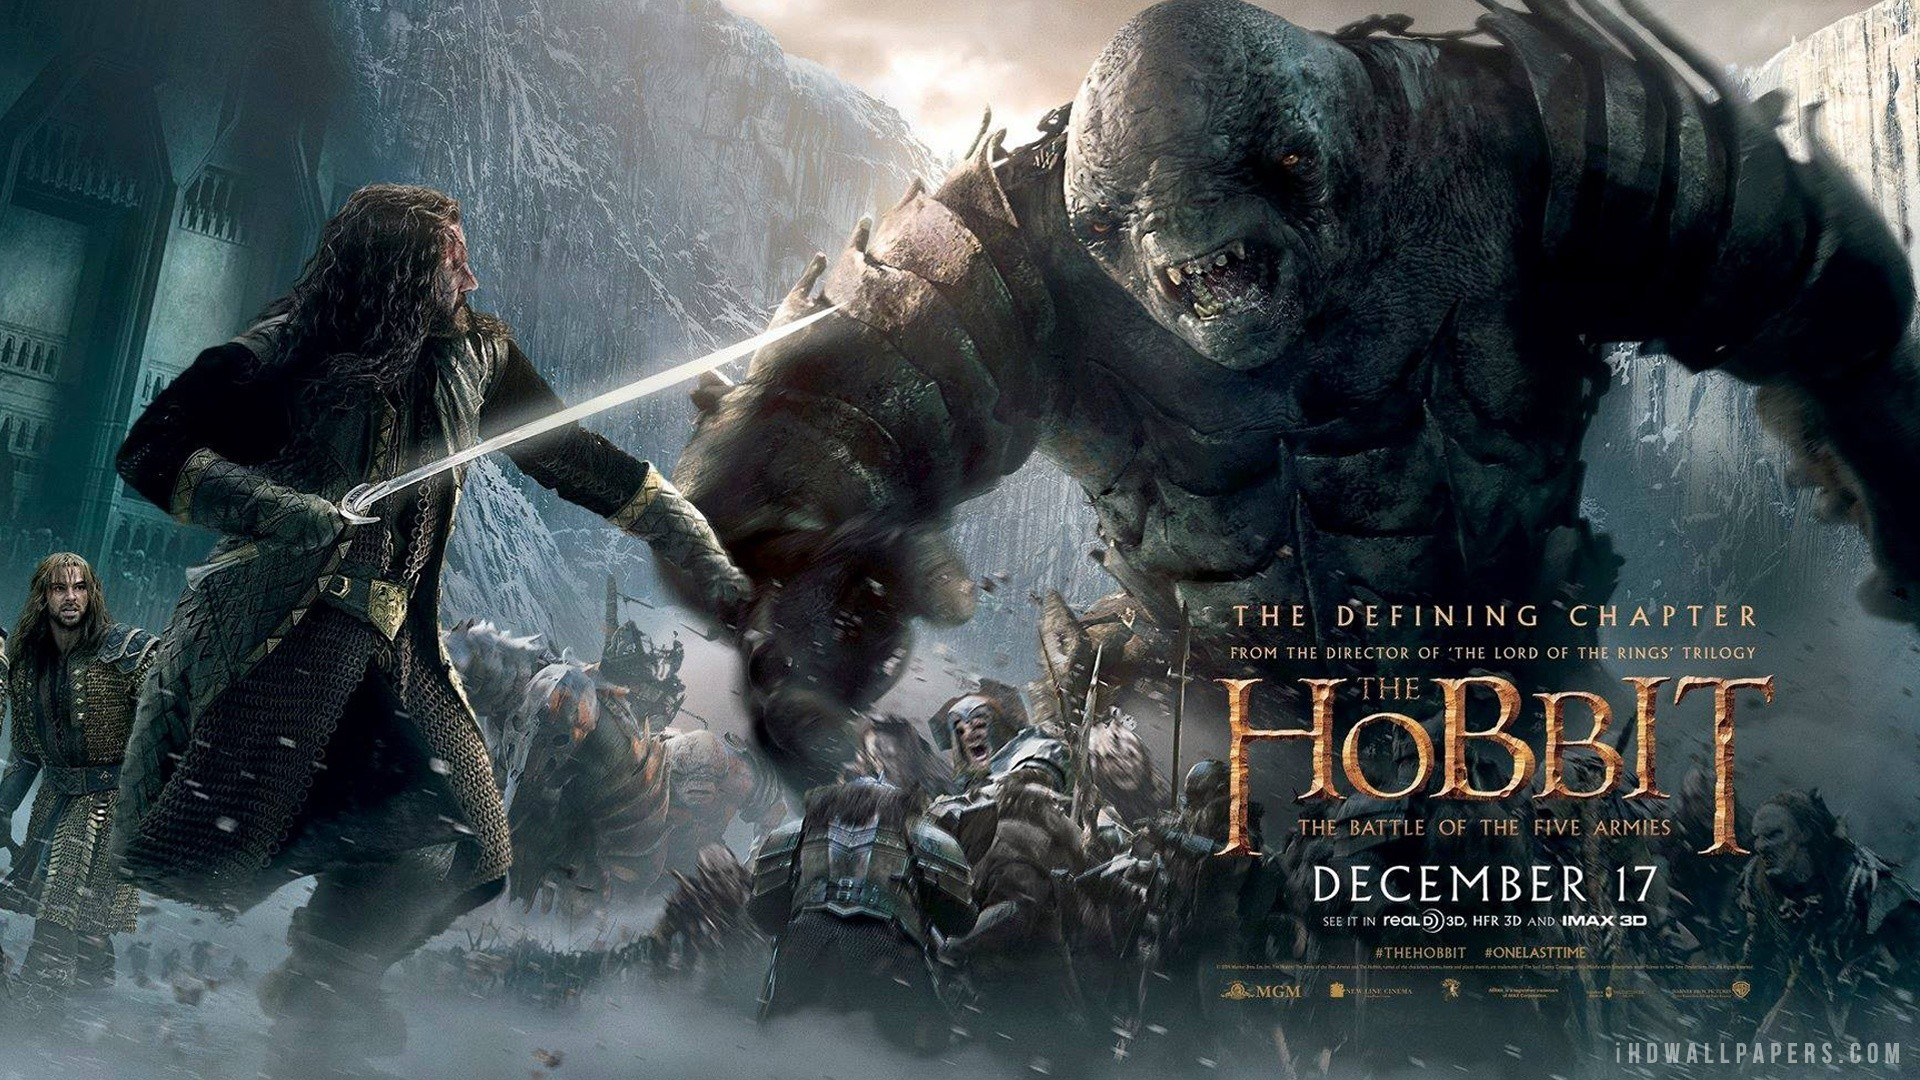 The Hobbit The Battle Of The Five Armies Wallpaper Full Hd As Wallpaper HD